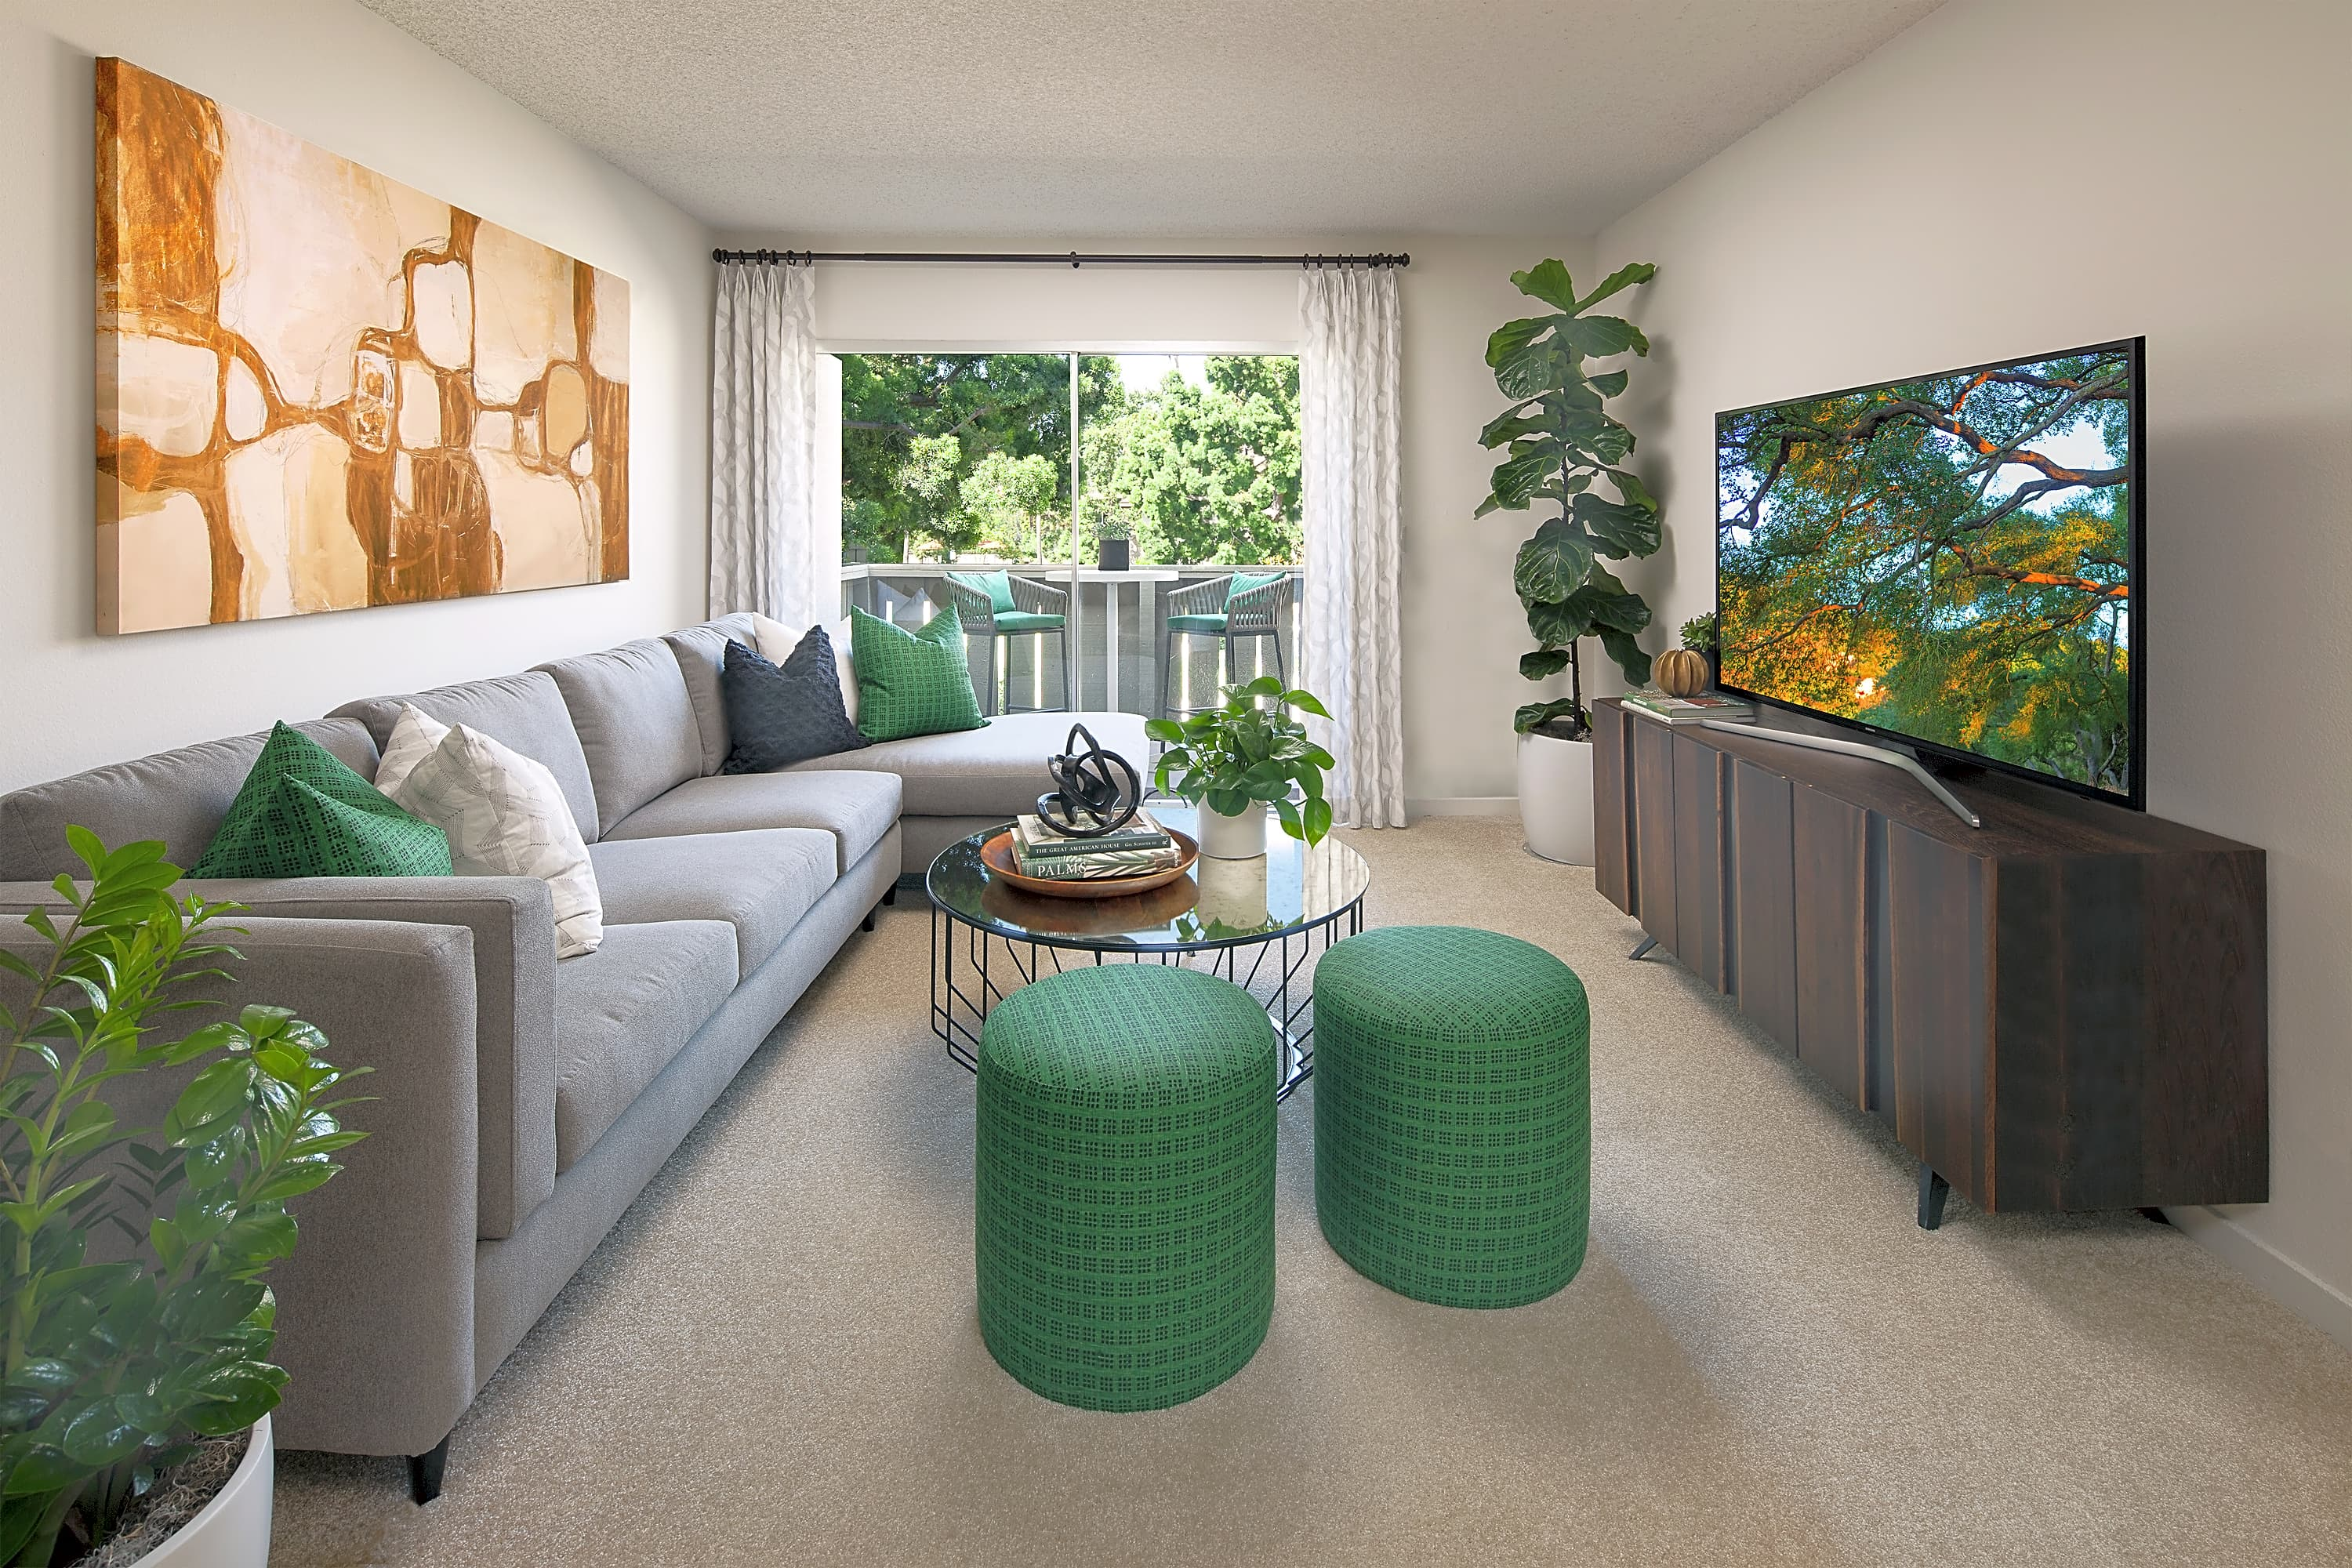 Apartments Near UC Irvine Park West for University of California - Irvine Students in Irvine, CA